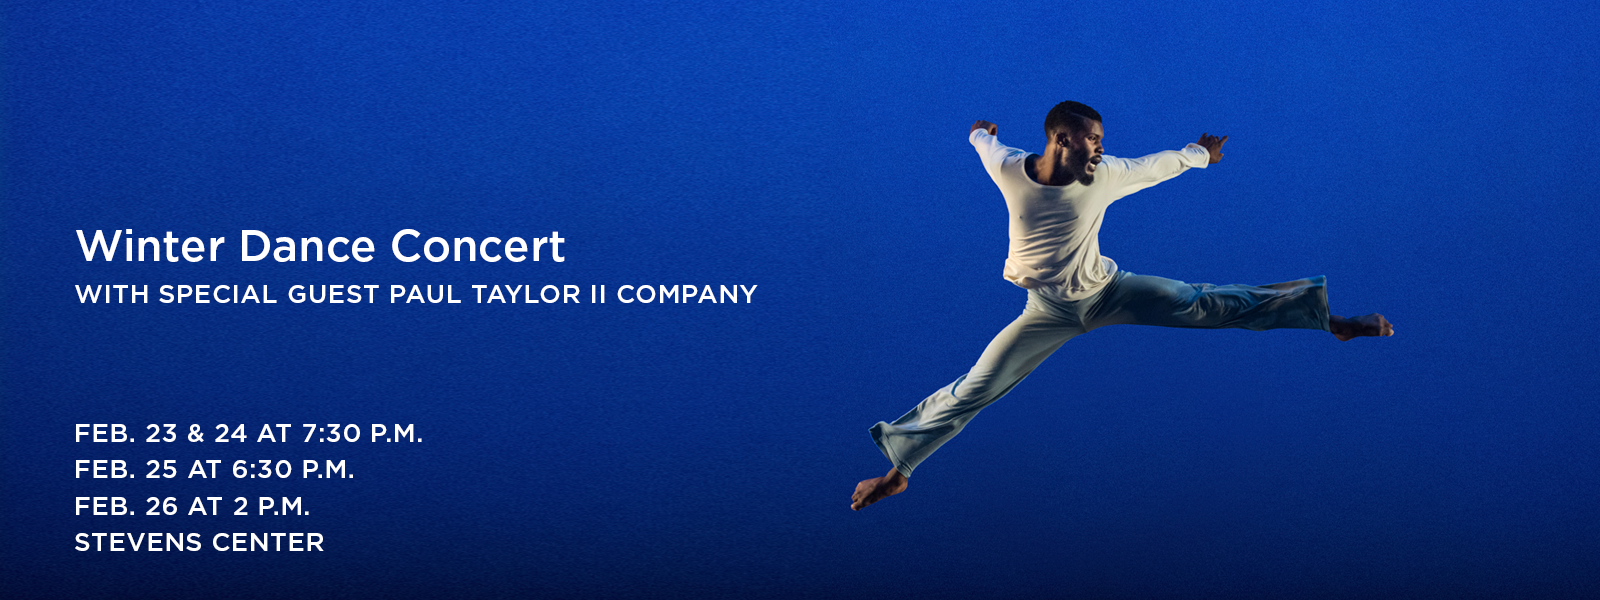 Classic meets cutting edge in this winter's dance showcase. >> BUY TICKETS